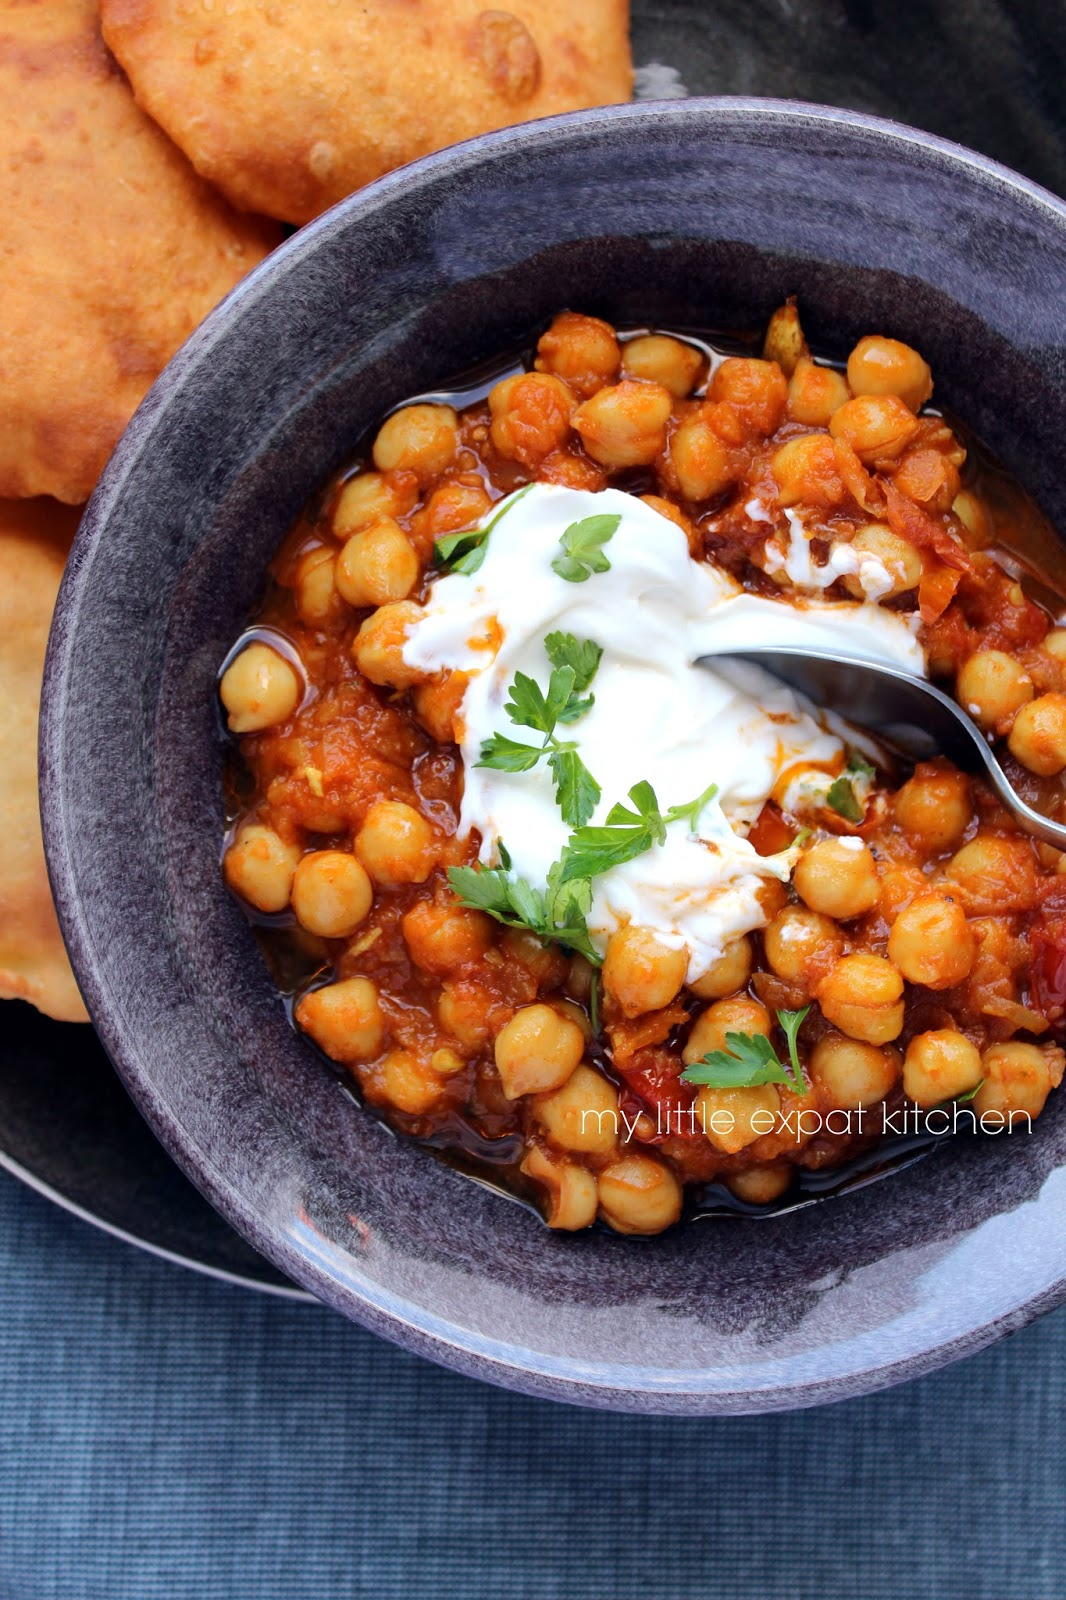 ... Bhature (Indian spicy chickpea stew and Indian puffed fried bread